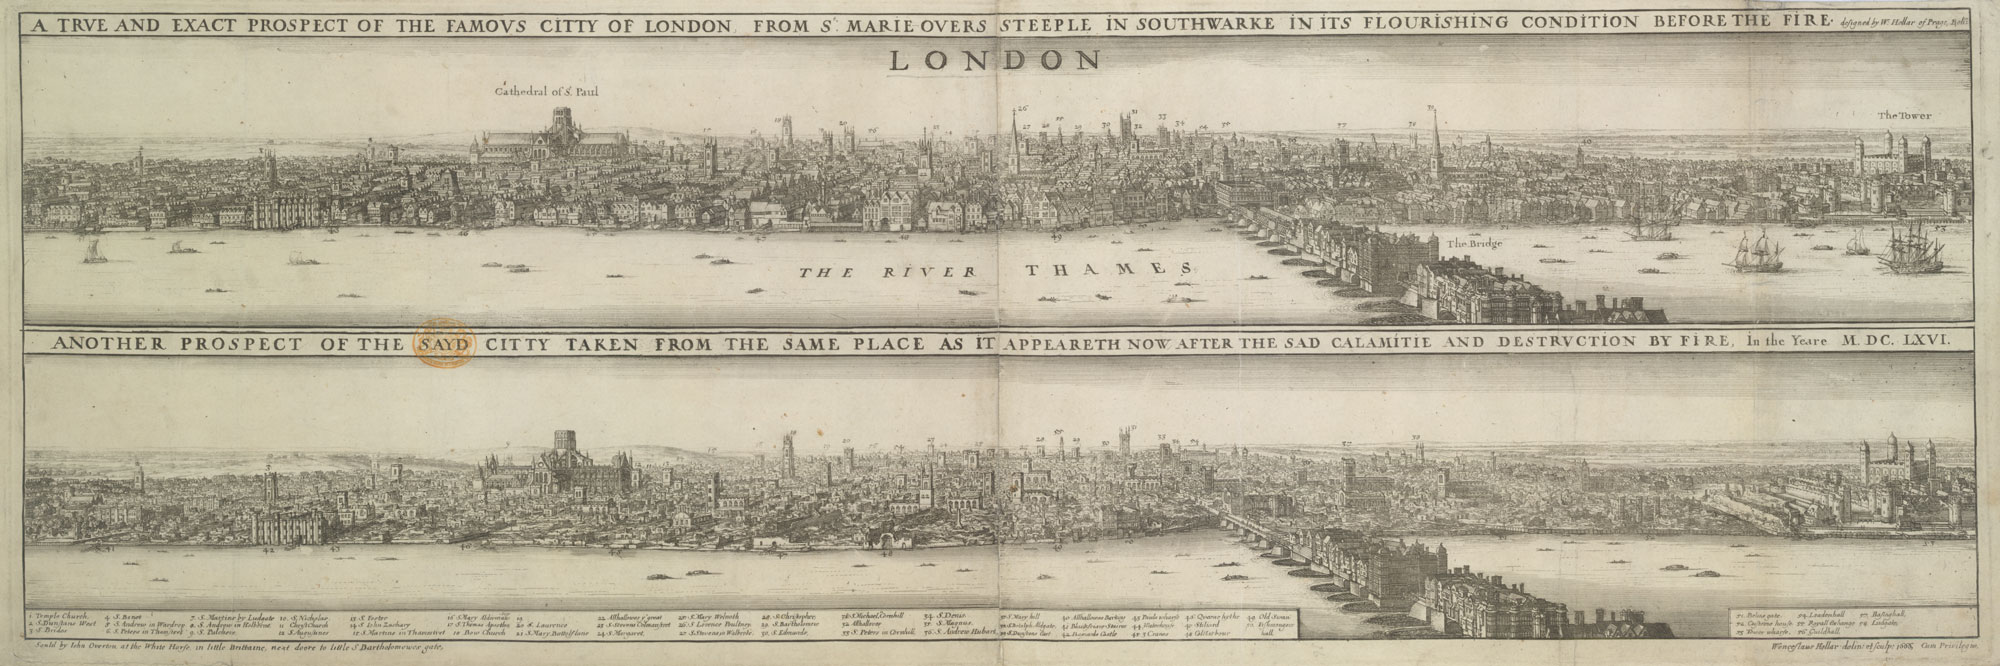 Hollar's map of London before and after the Great Fire of London